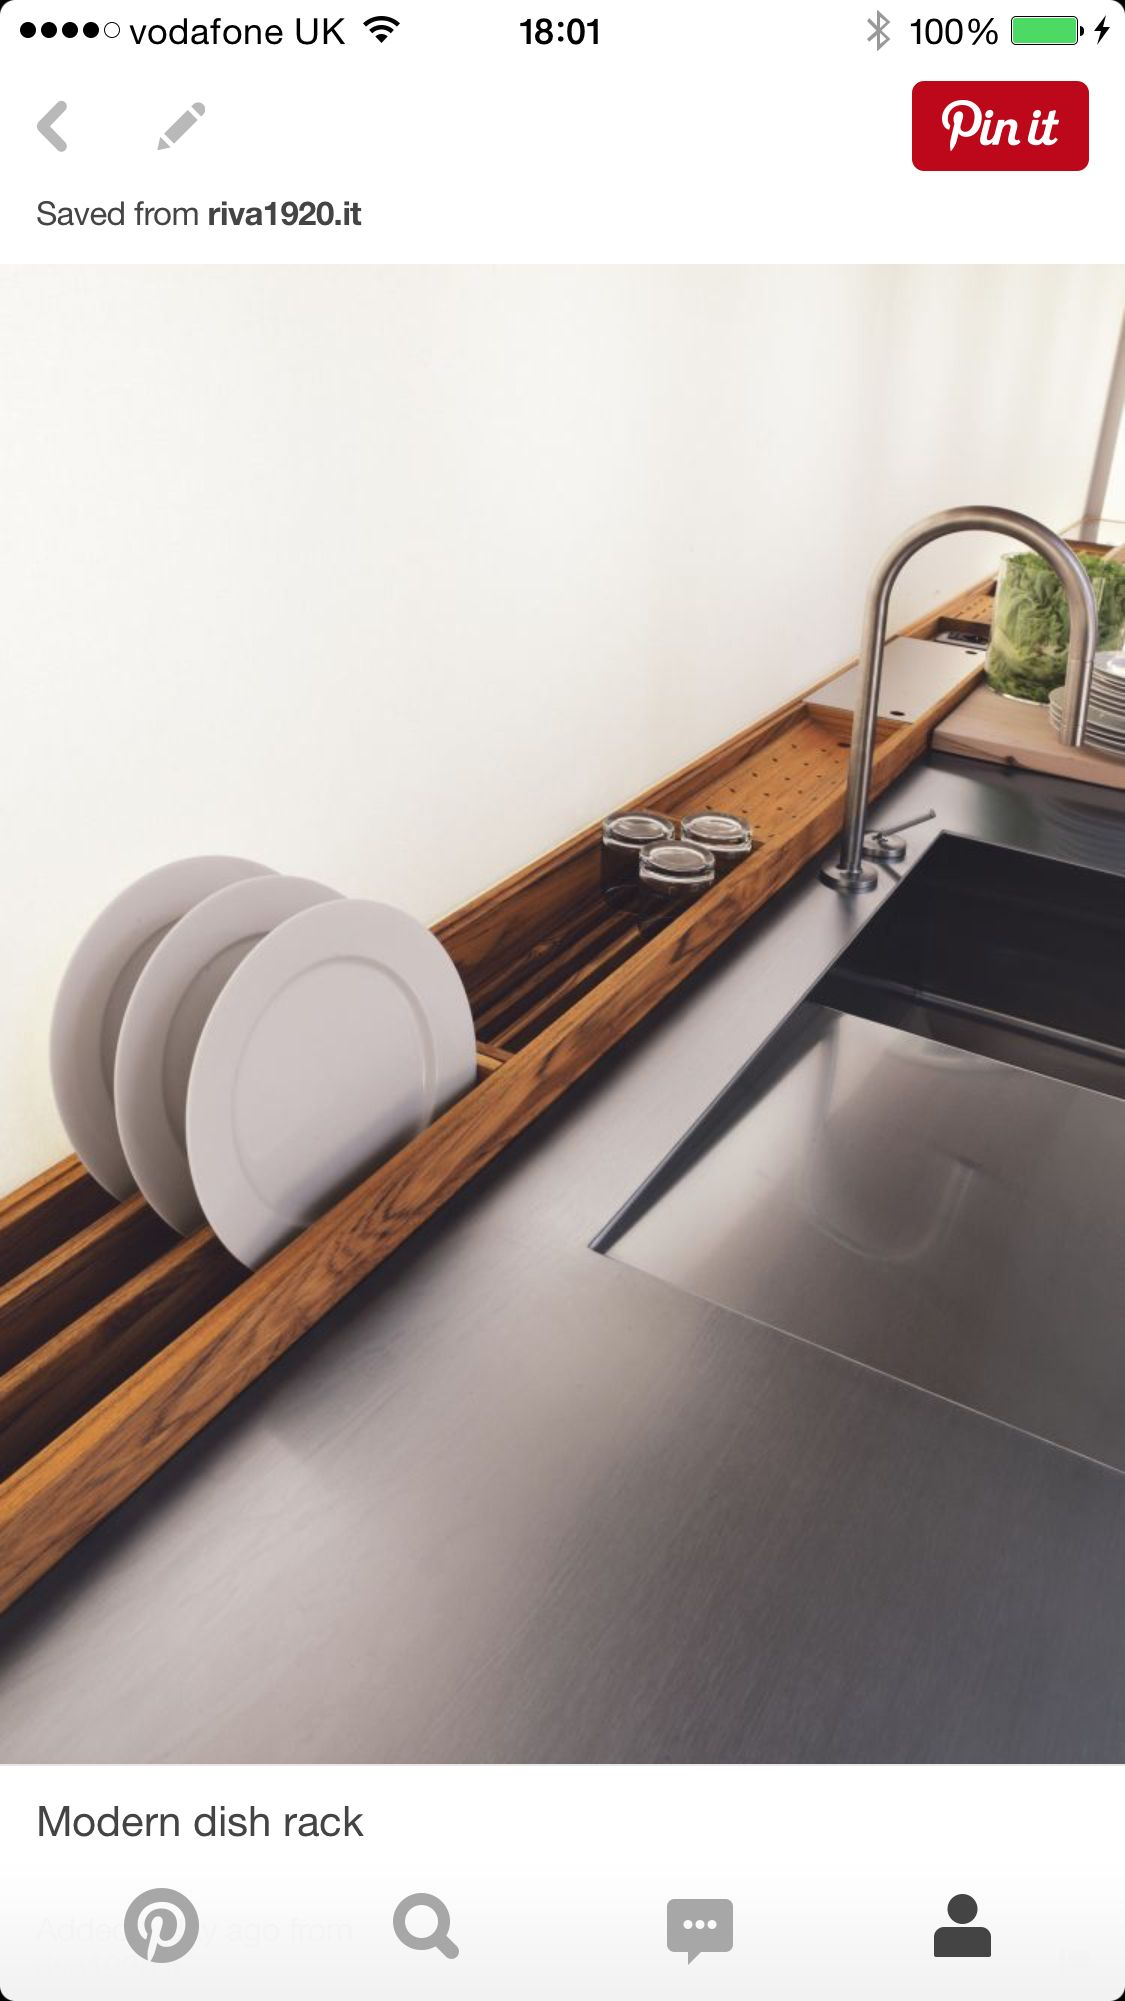 For kitchen sink bench - wood has an Asian feel